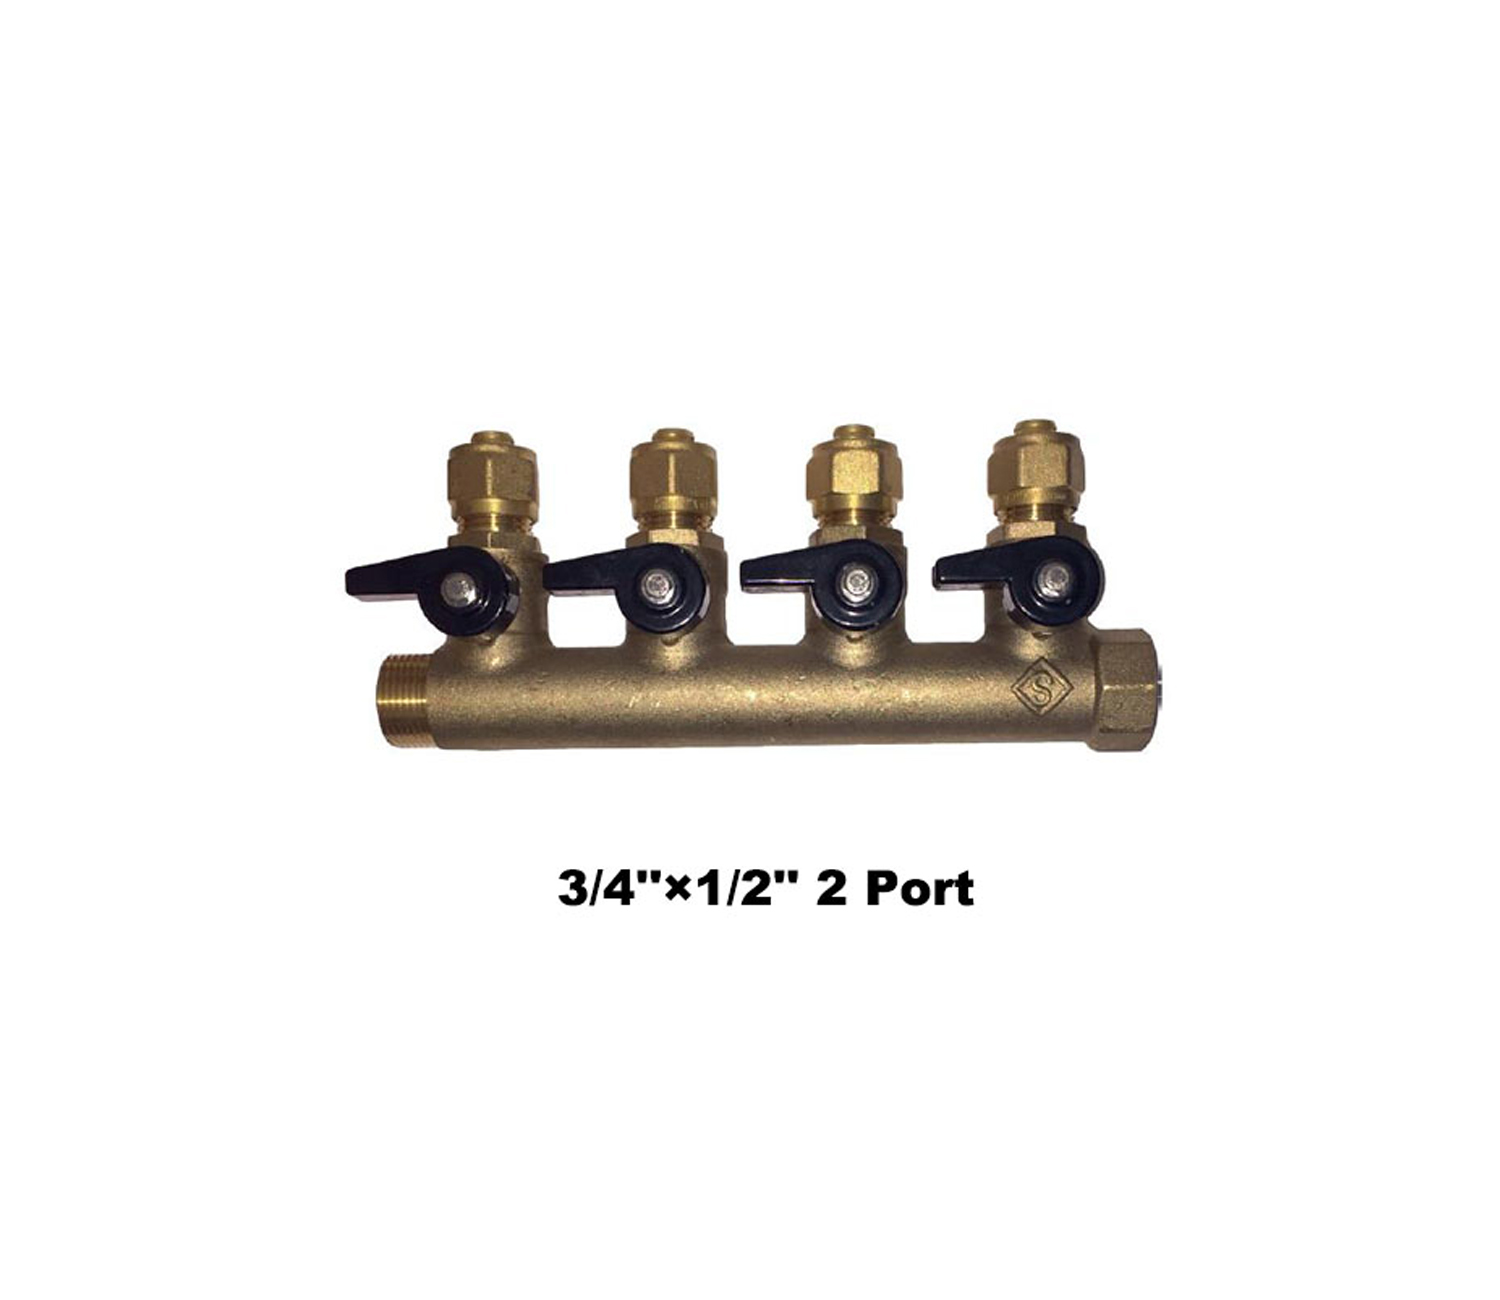 "Brass Manifolds with ISO Valves (With Adaptors) 3/4""×1/2"" 2 Port Manifold+ISO (771892K)"